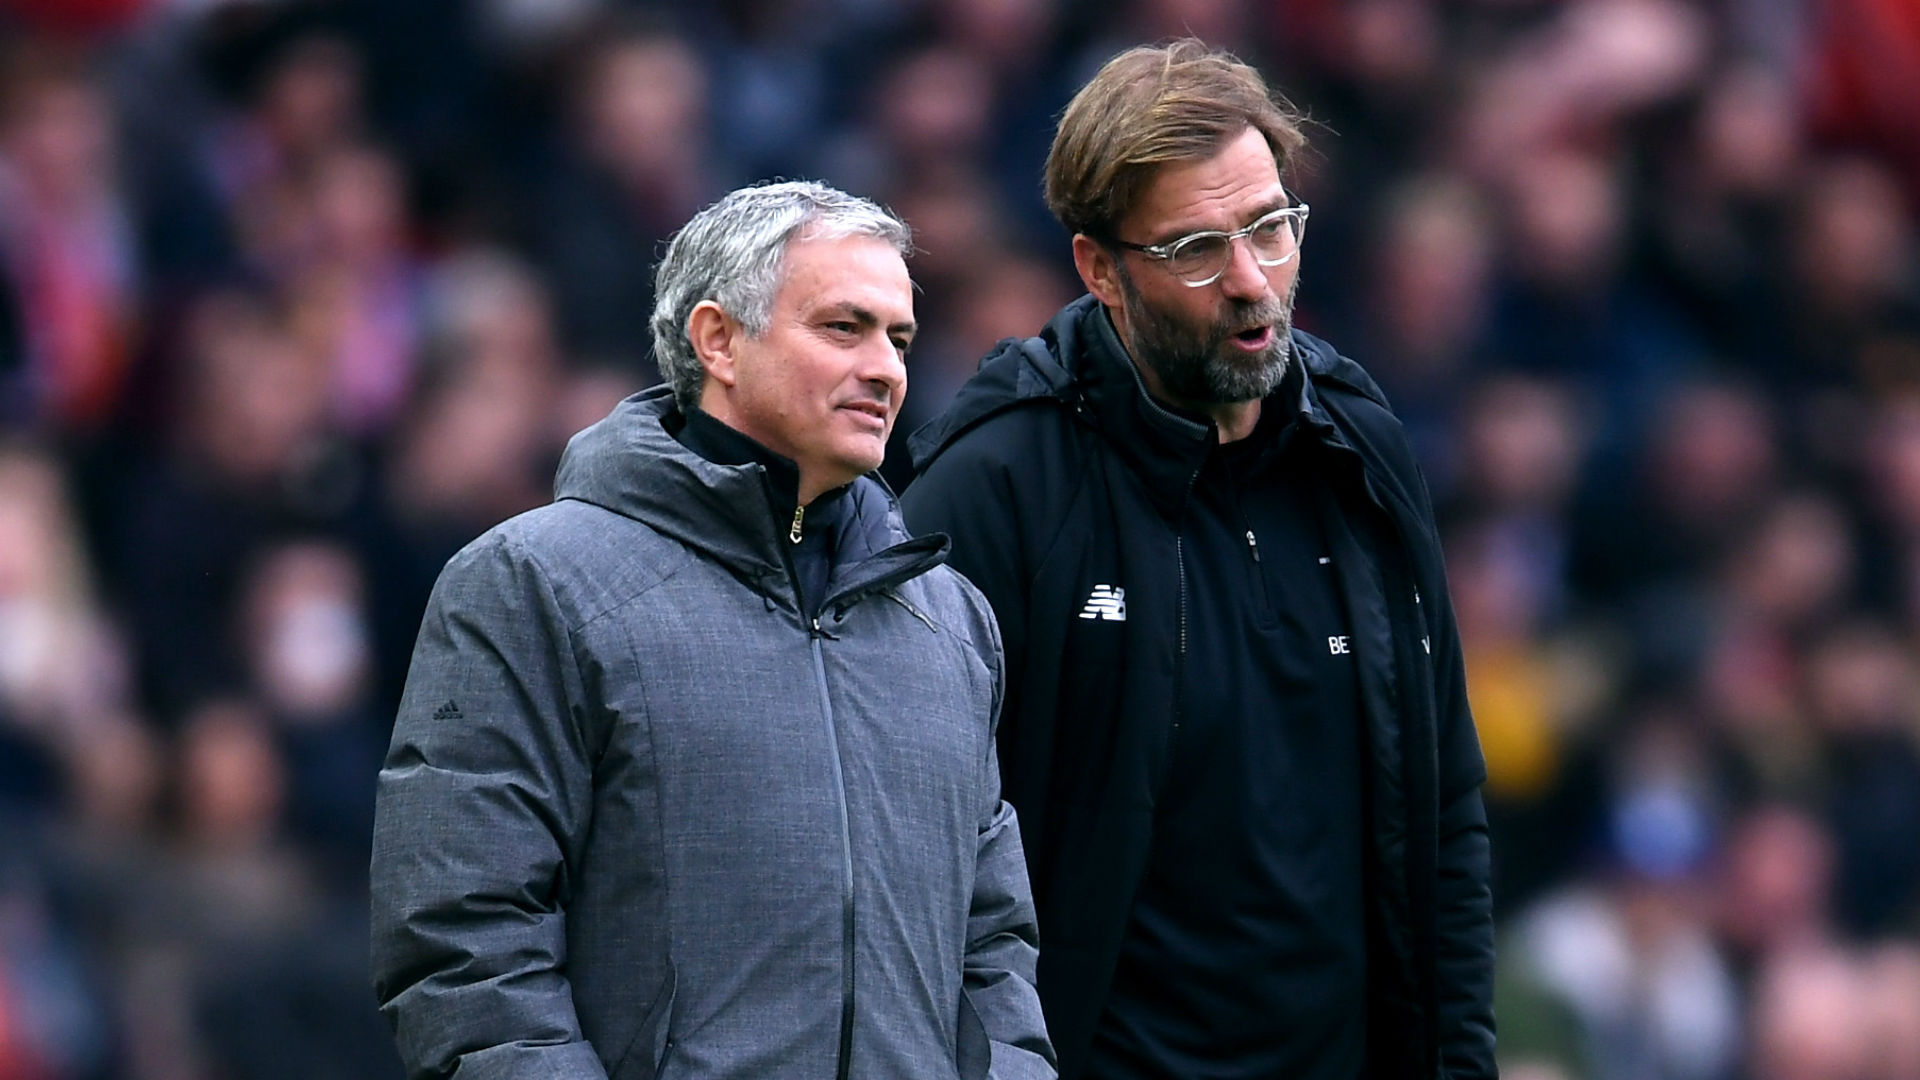 Welcome back, Jose - Liverpool boss Klopp thrilled with Mourinho's return